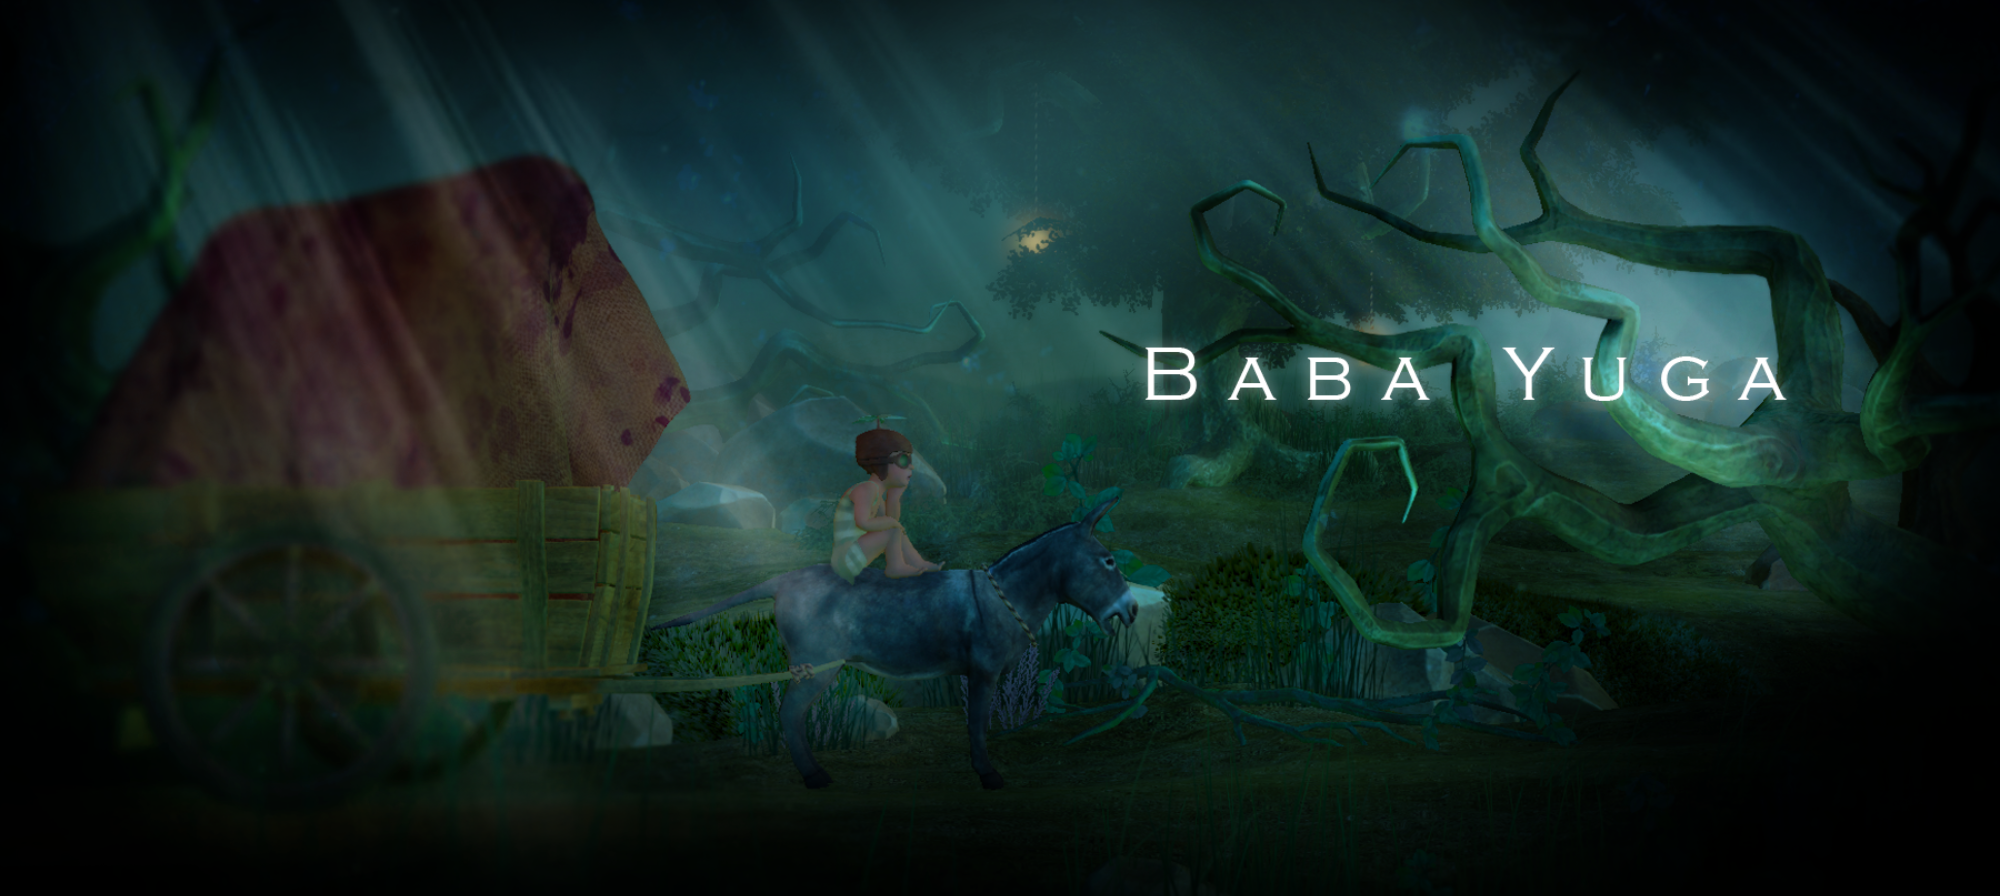 The product cover image of the game Baba Yuga.